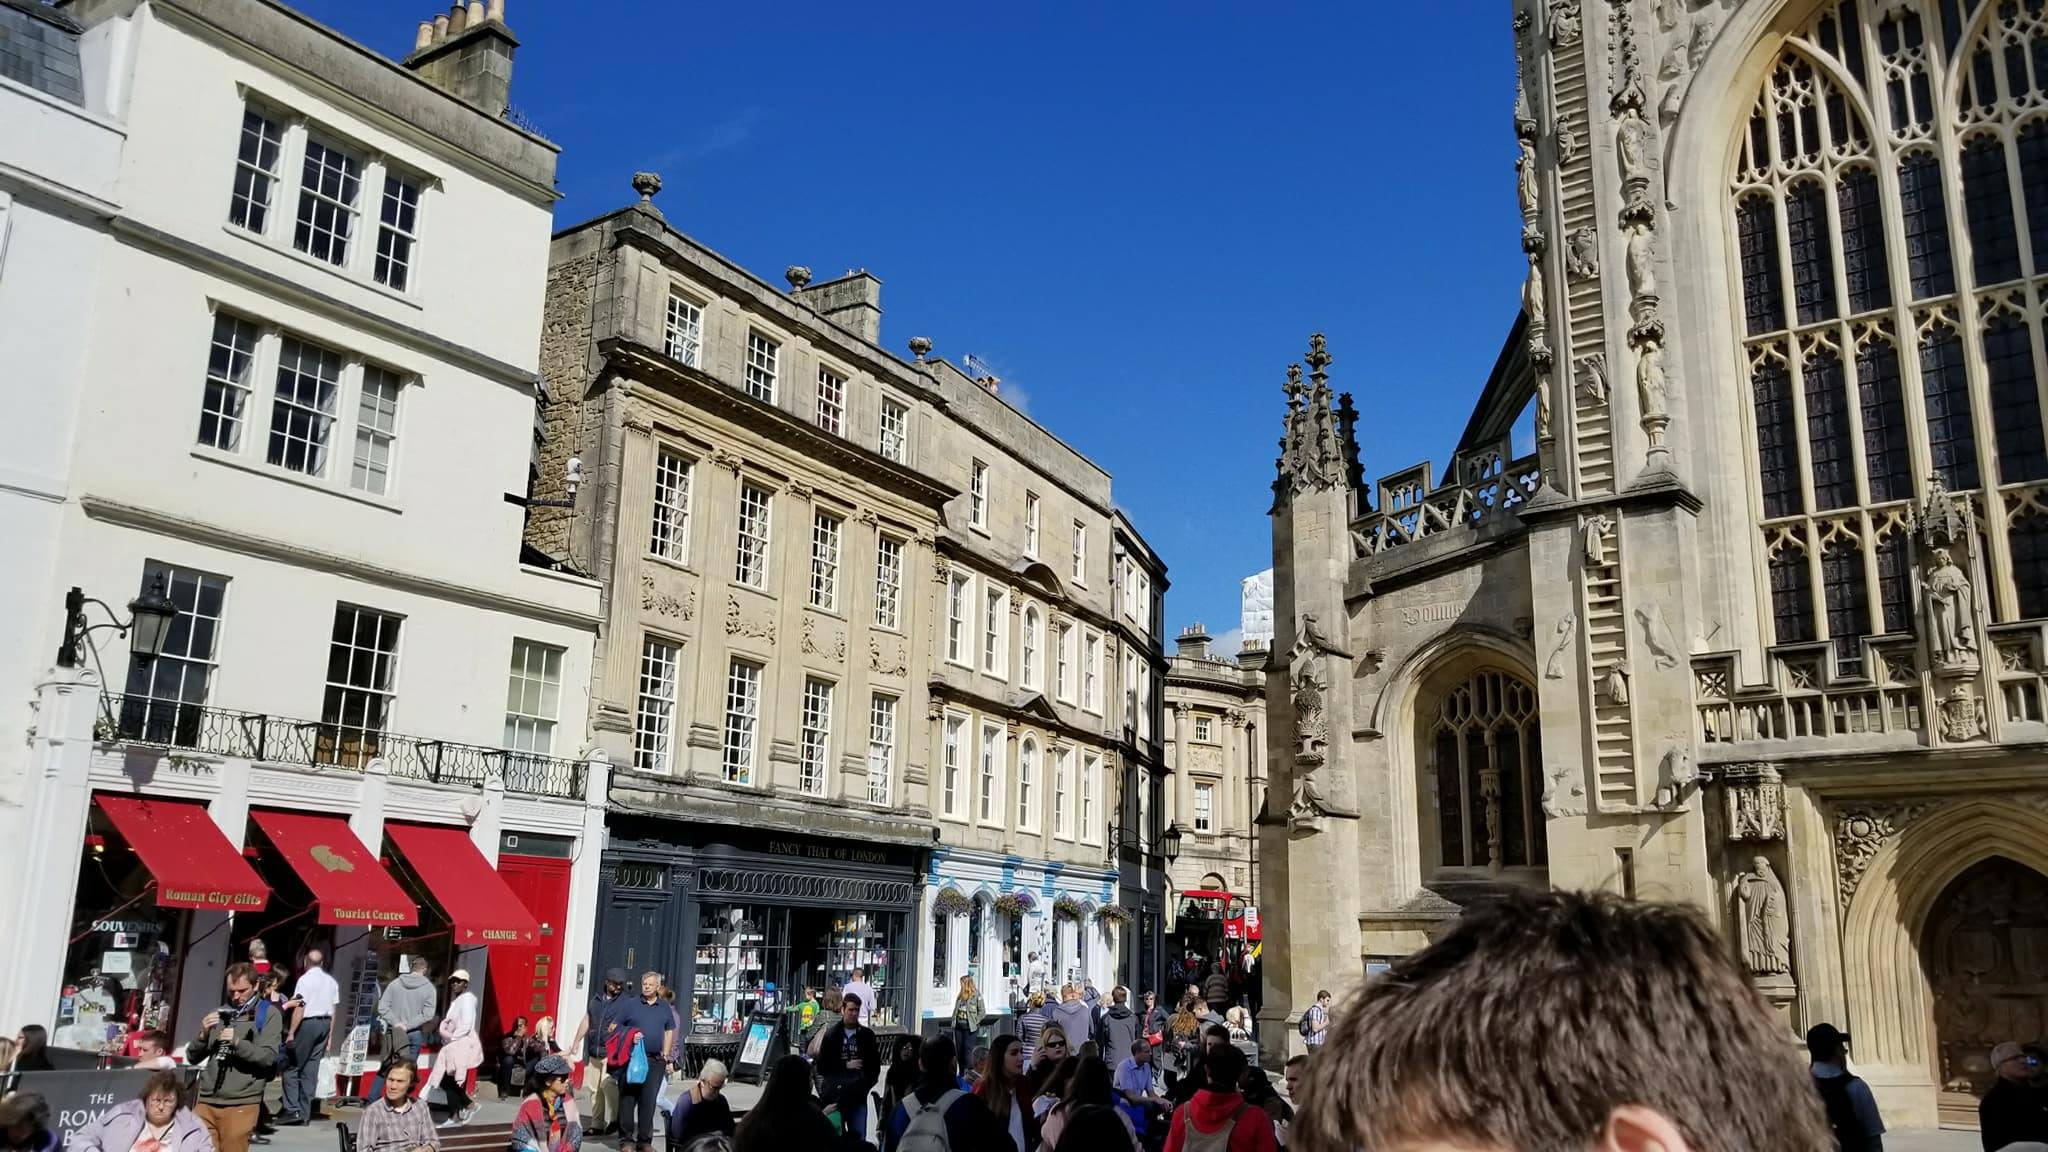 CAPAStudyAbroad_London_Fall2017_From Thaddeus Kaszuba - Just outside of the Roman Baths in Bath.jpg